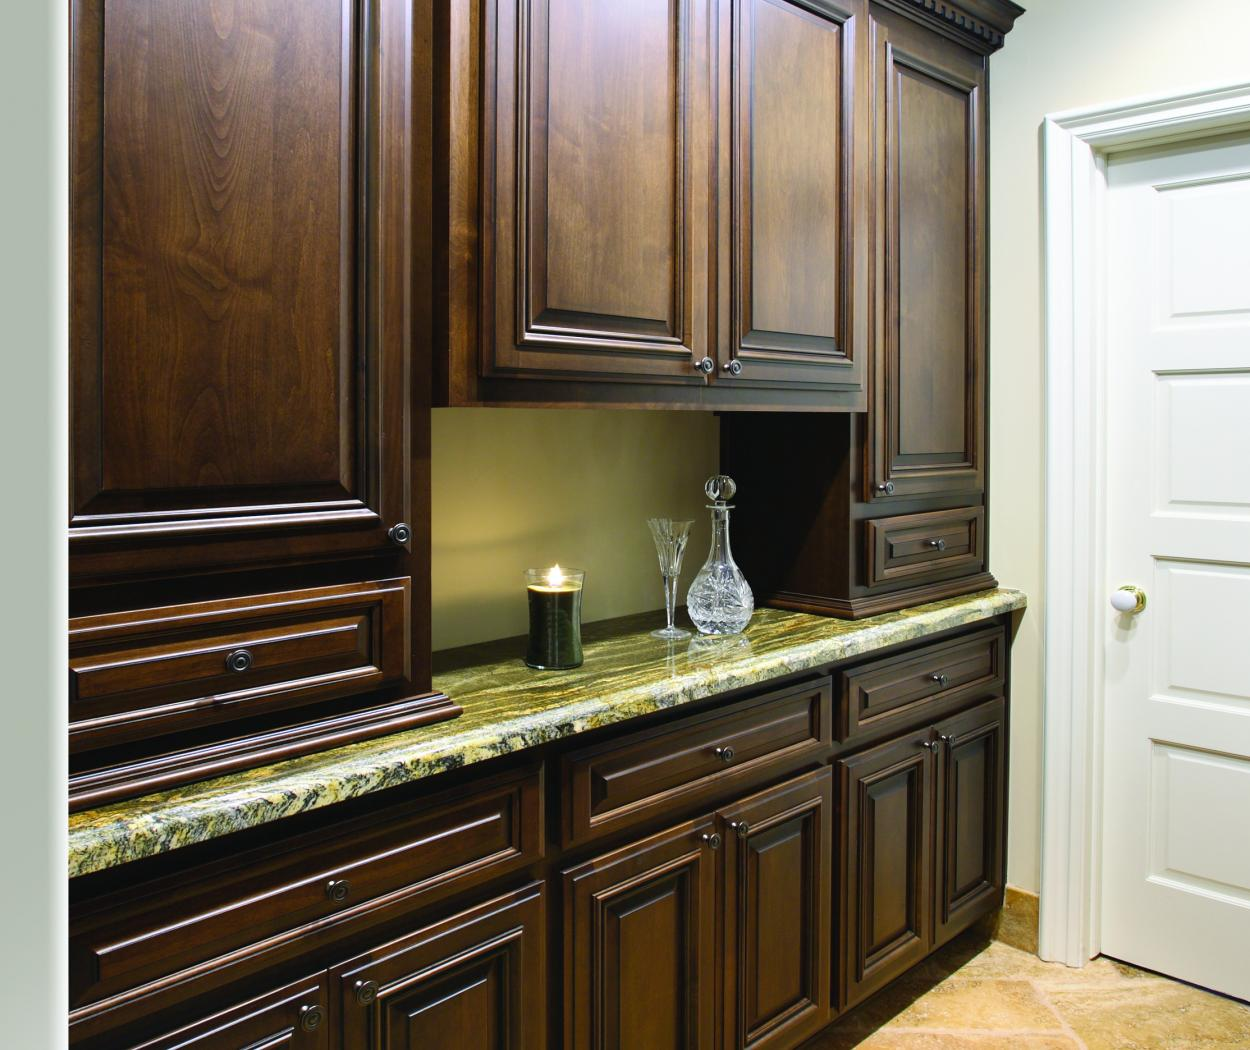 Traditional Chocolate Stained Built-In with a Beautiful Granite Countertop and Oil Rubbed Bronze Hardware